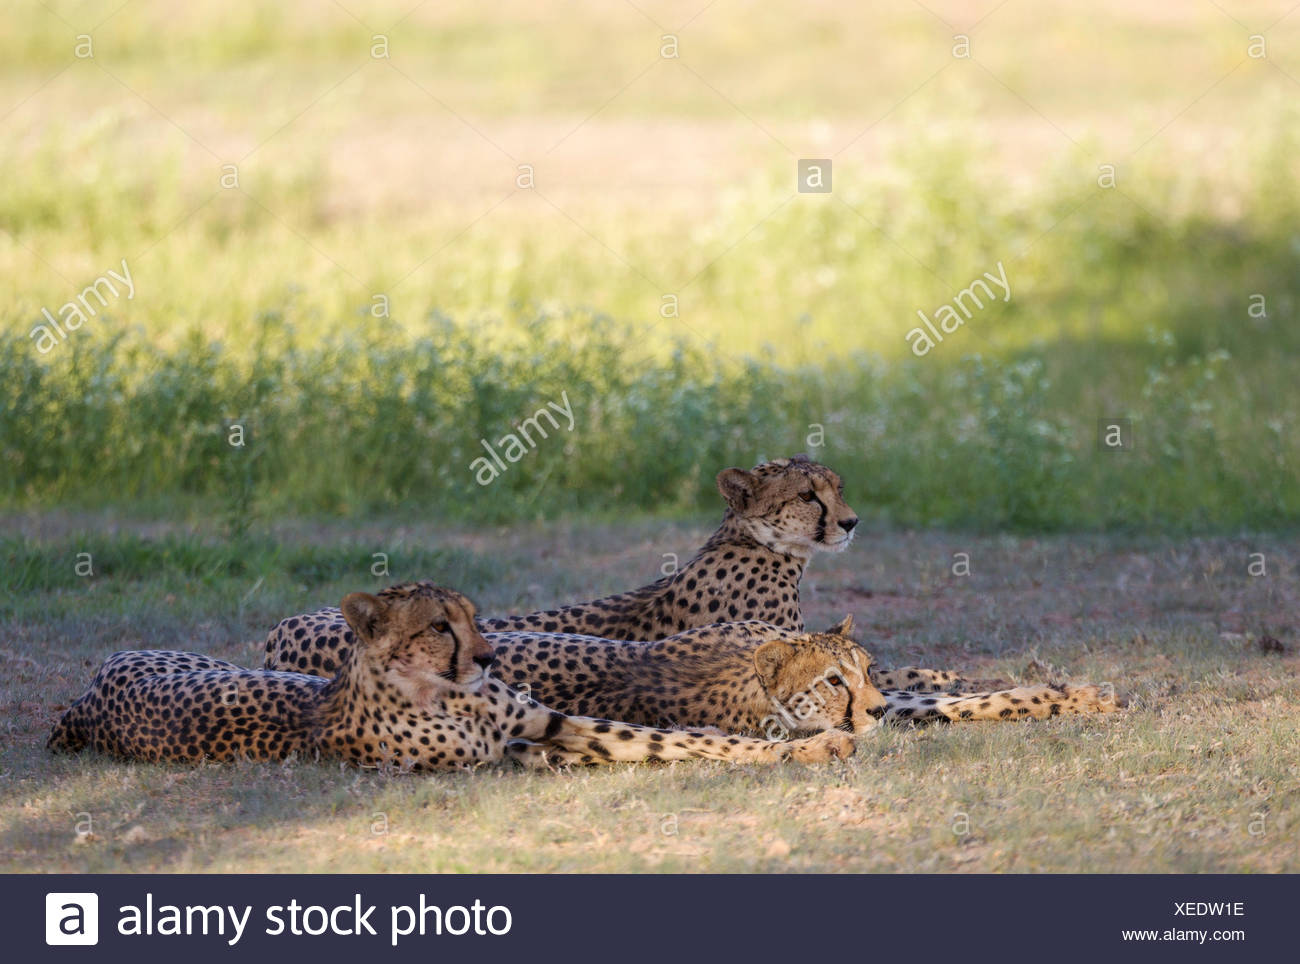 Cheetah (Acinonyx jubatus), female with her two subadult female cubs, resting after having fed, during the rainy season in green - Stock Image